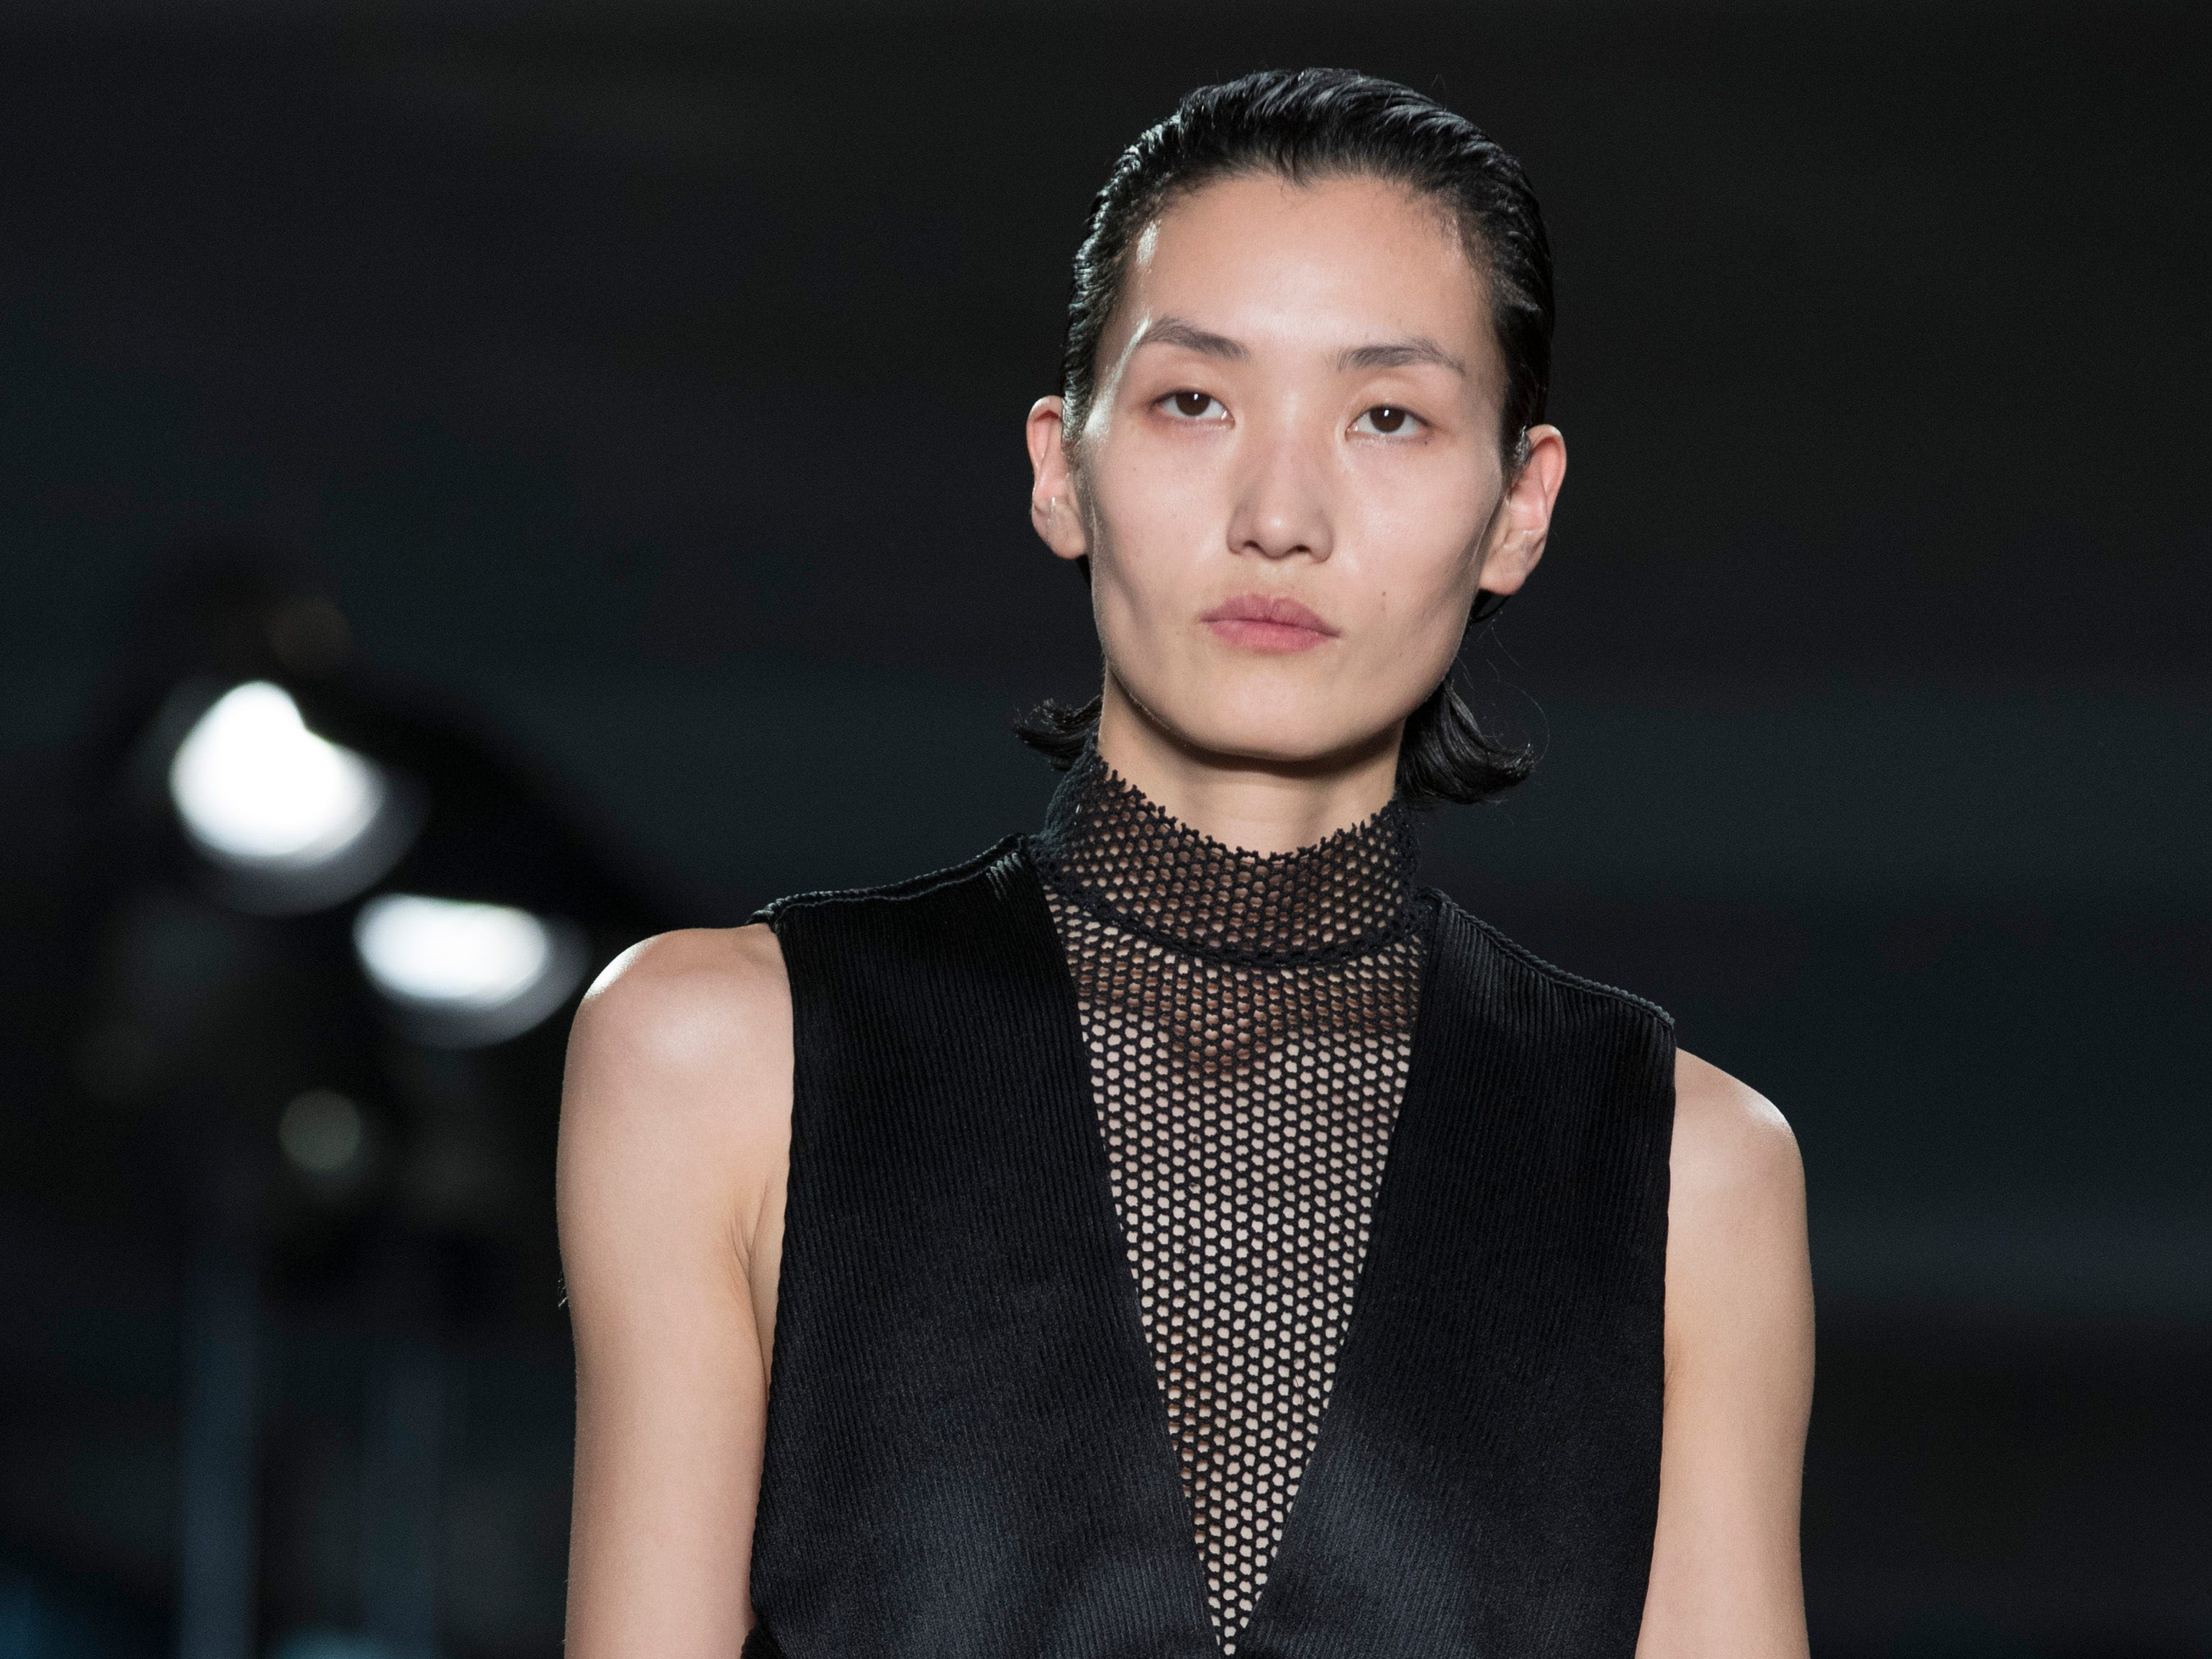 Another Proenza Schouler look featured a black satin jumpsuit with tuxedo trim and mesh panels.